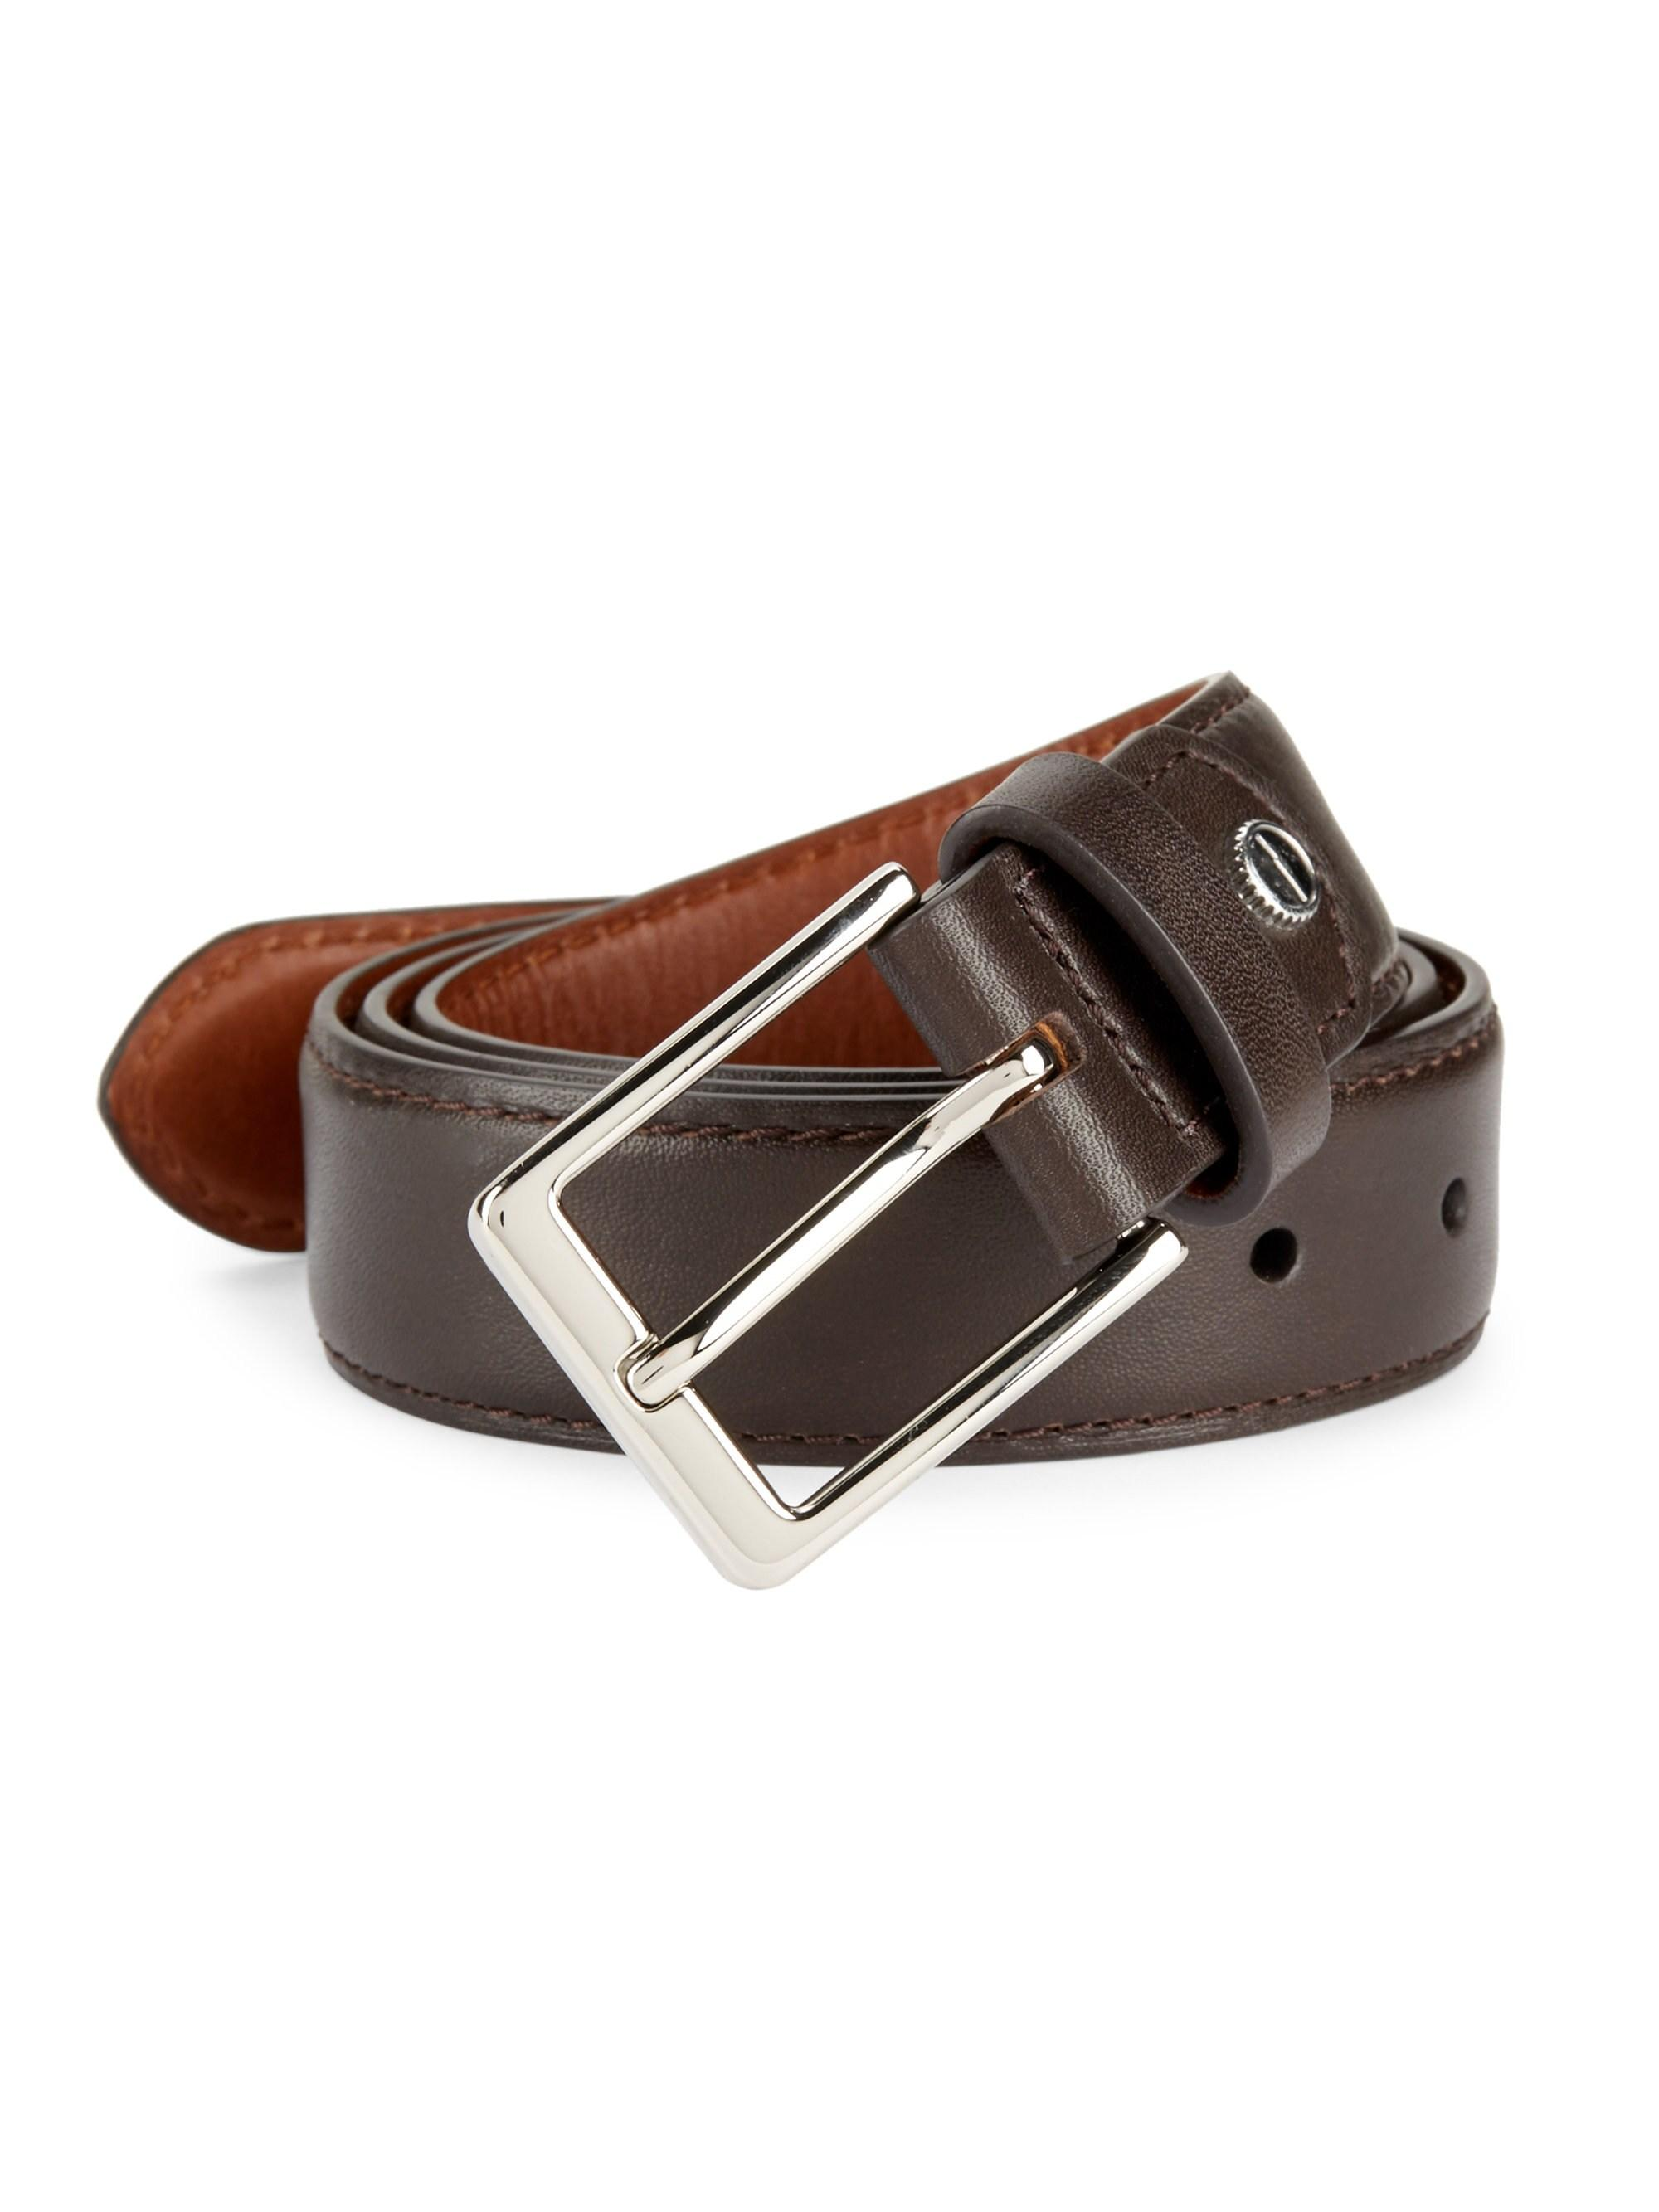 2236a4a3916 Shinola Bomb Beta Leather Belt in Brown for Men - Lyst